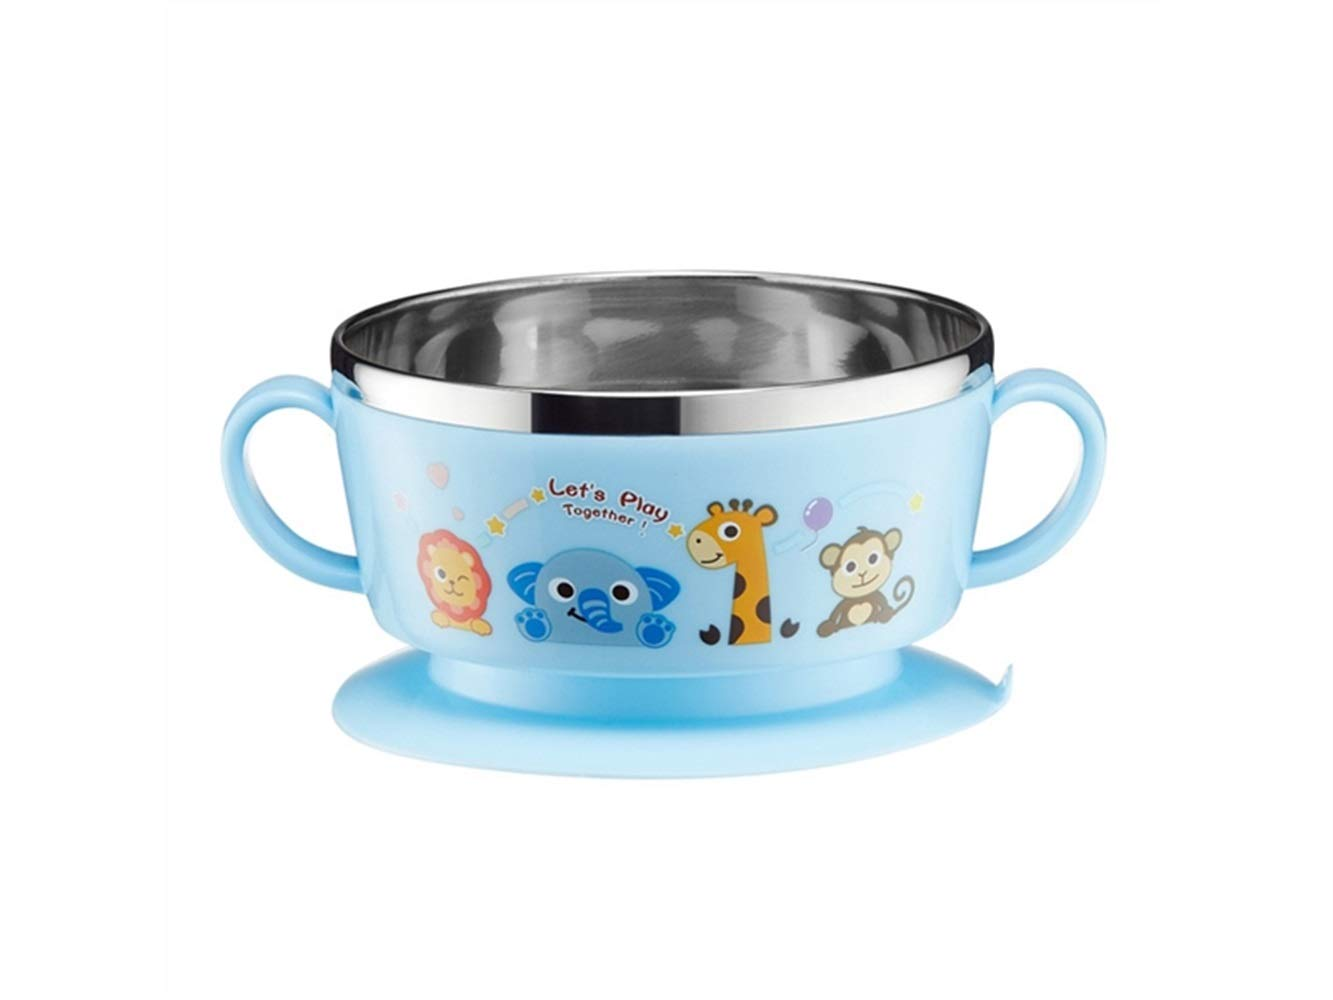 Yuchoi Contemporary Animal Pattern Baby Feeding Bowl Anti-Scald Stainless Steel Children Dish Insulation Bowl with Lid and Double Handles for Kids Students(Blue) by Yuchoi (Image #1)